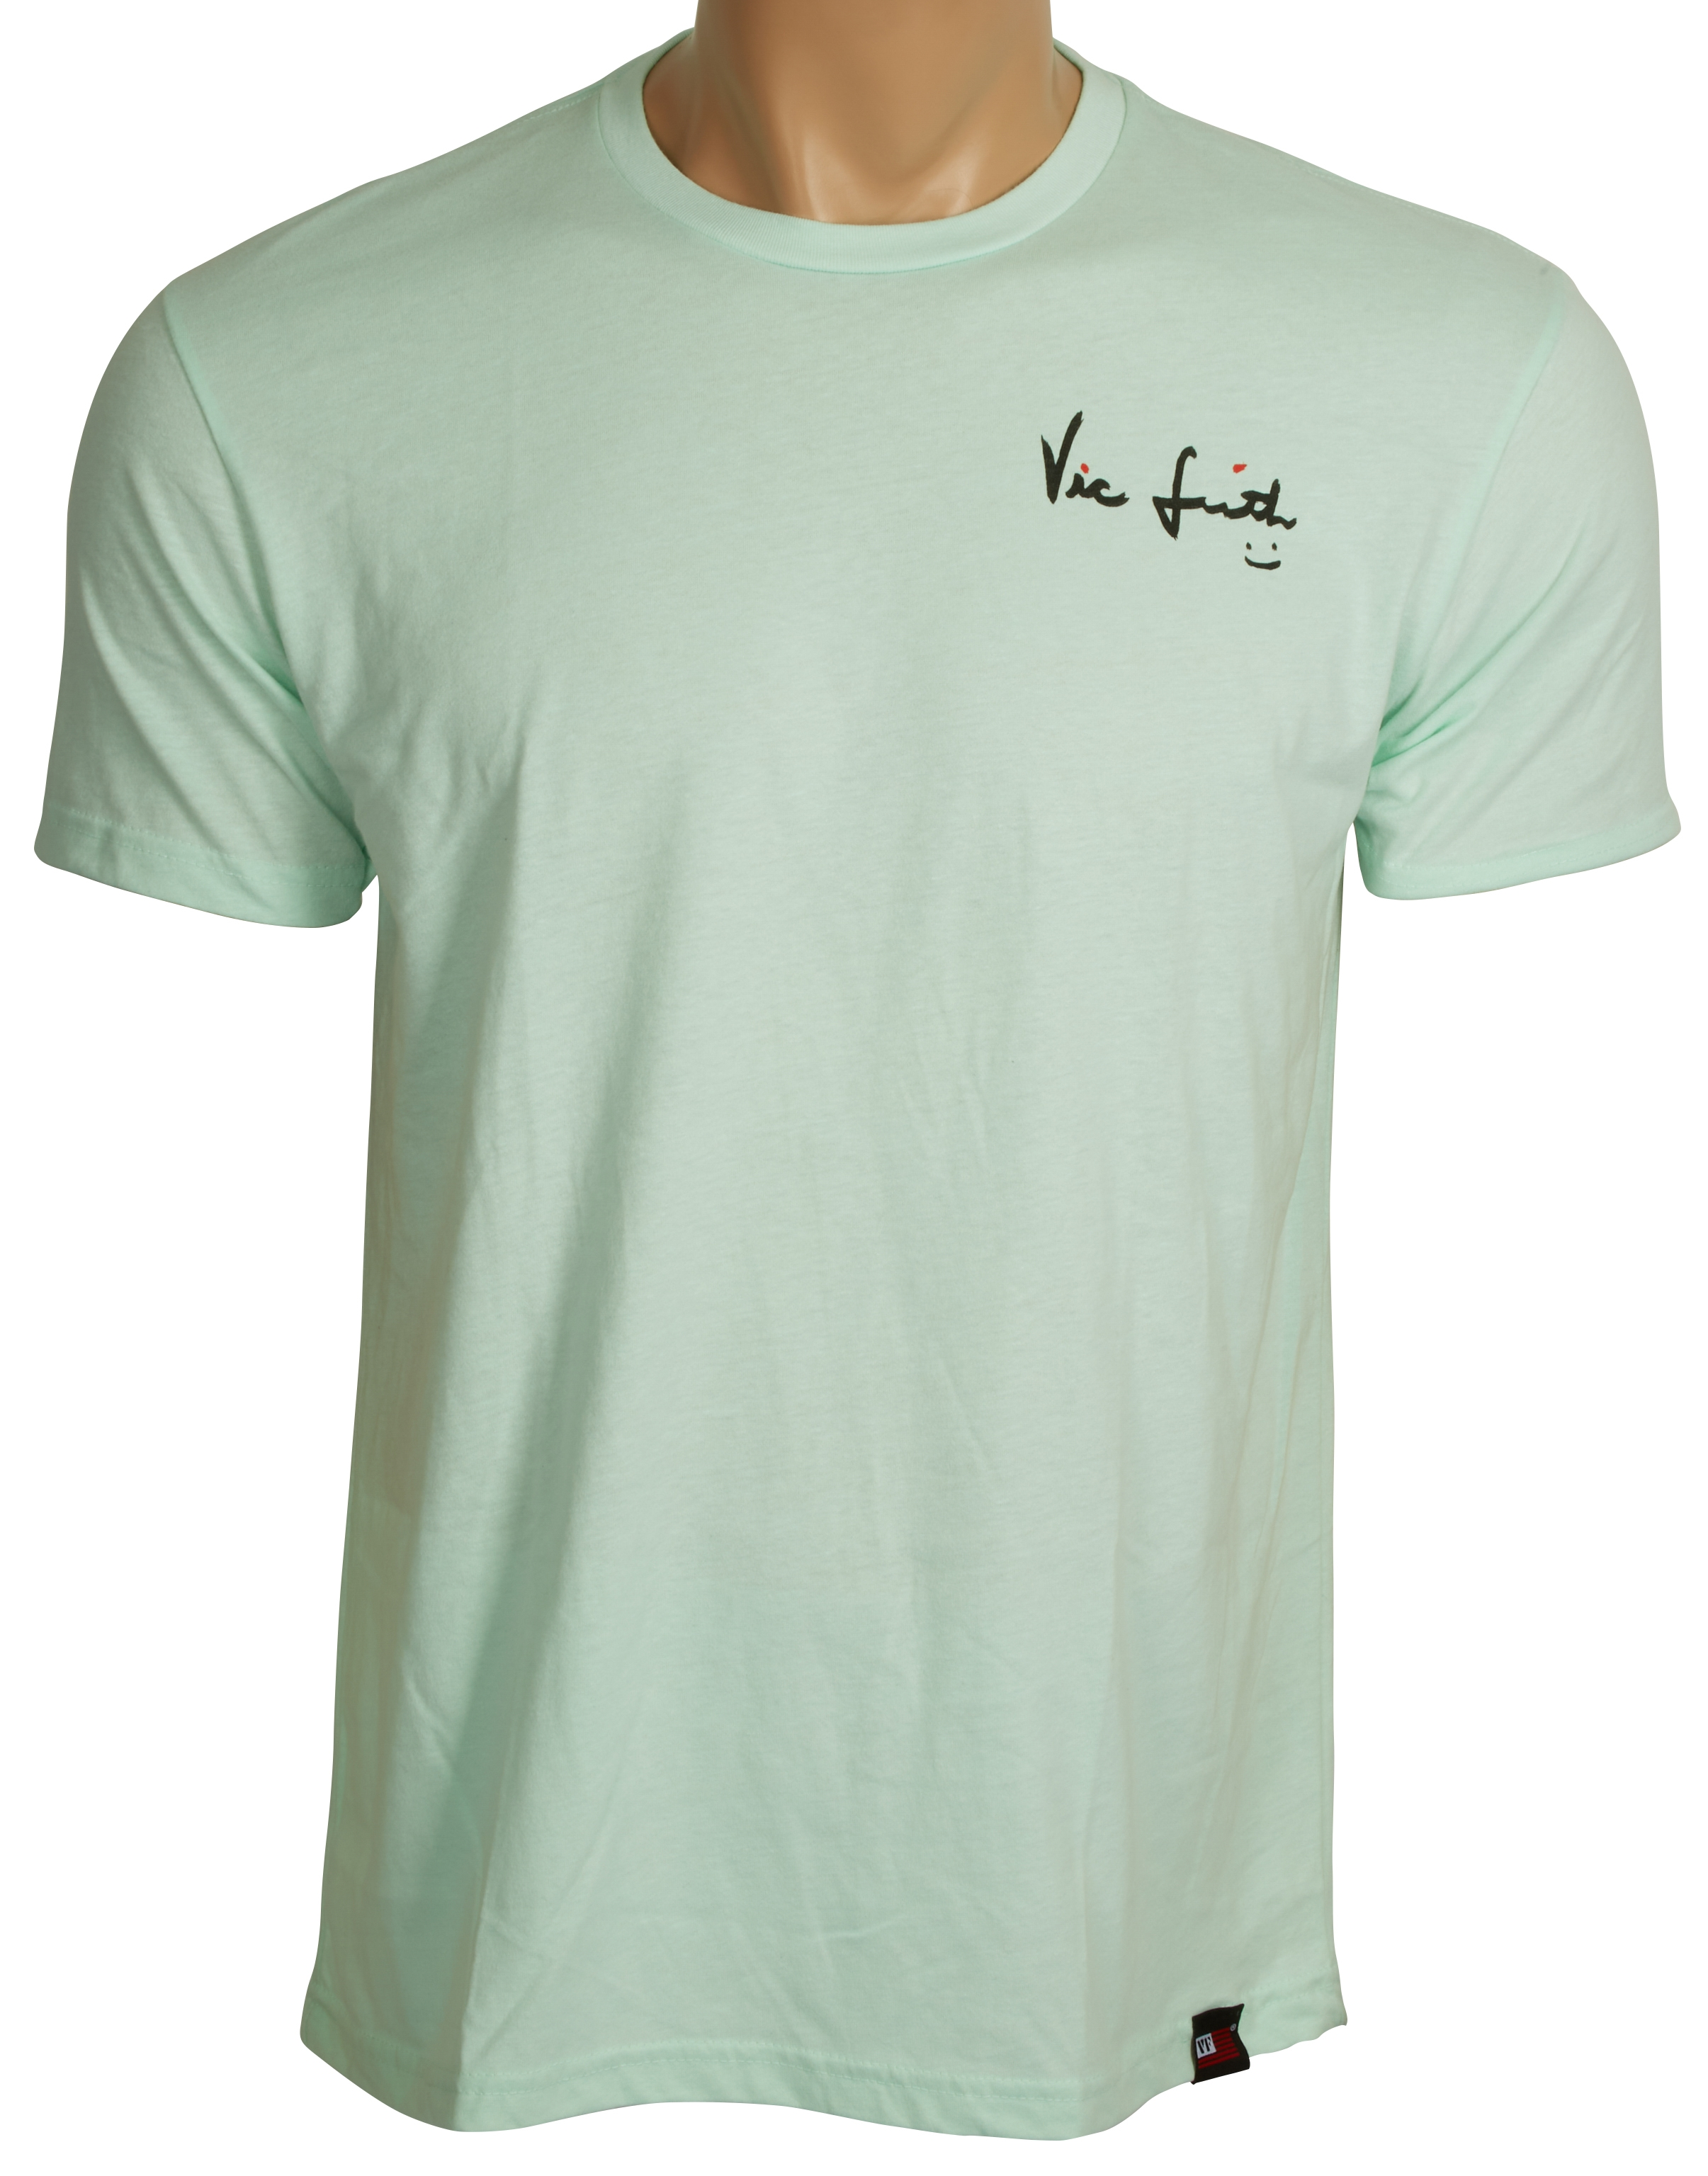 VIC FIRTH Neo Mint Signature Tee Large